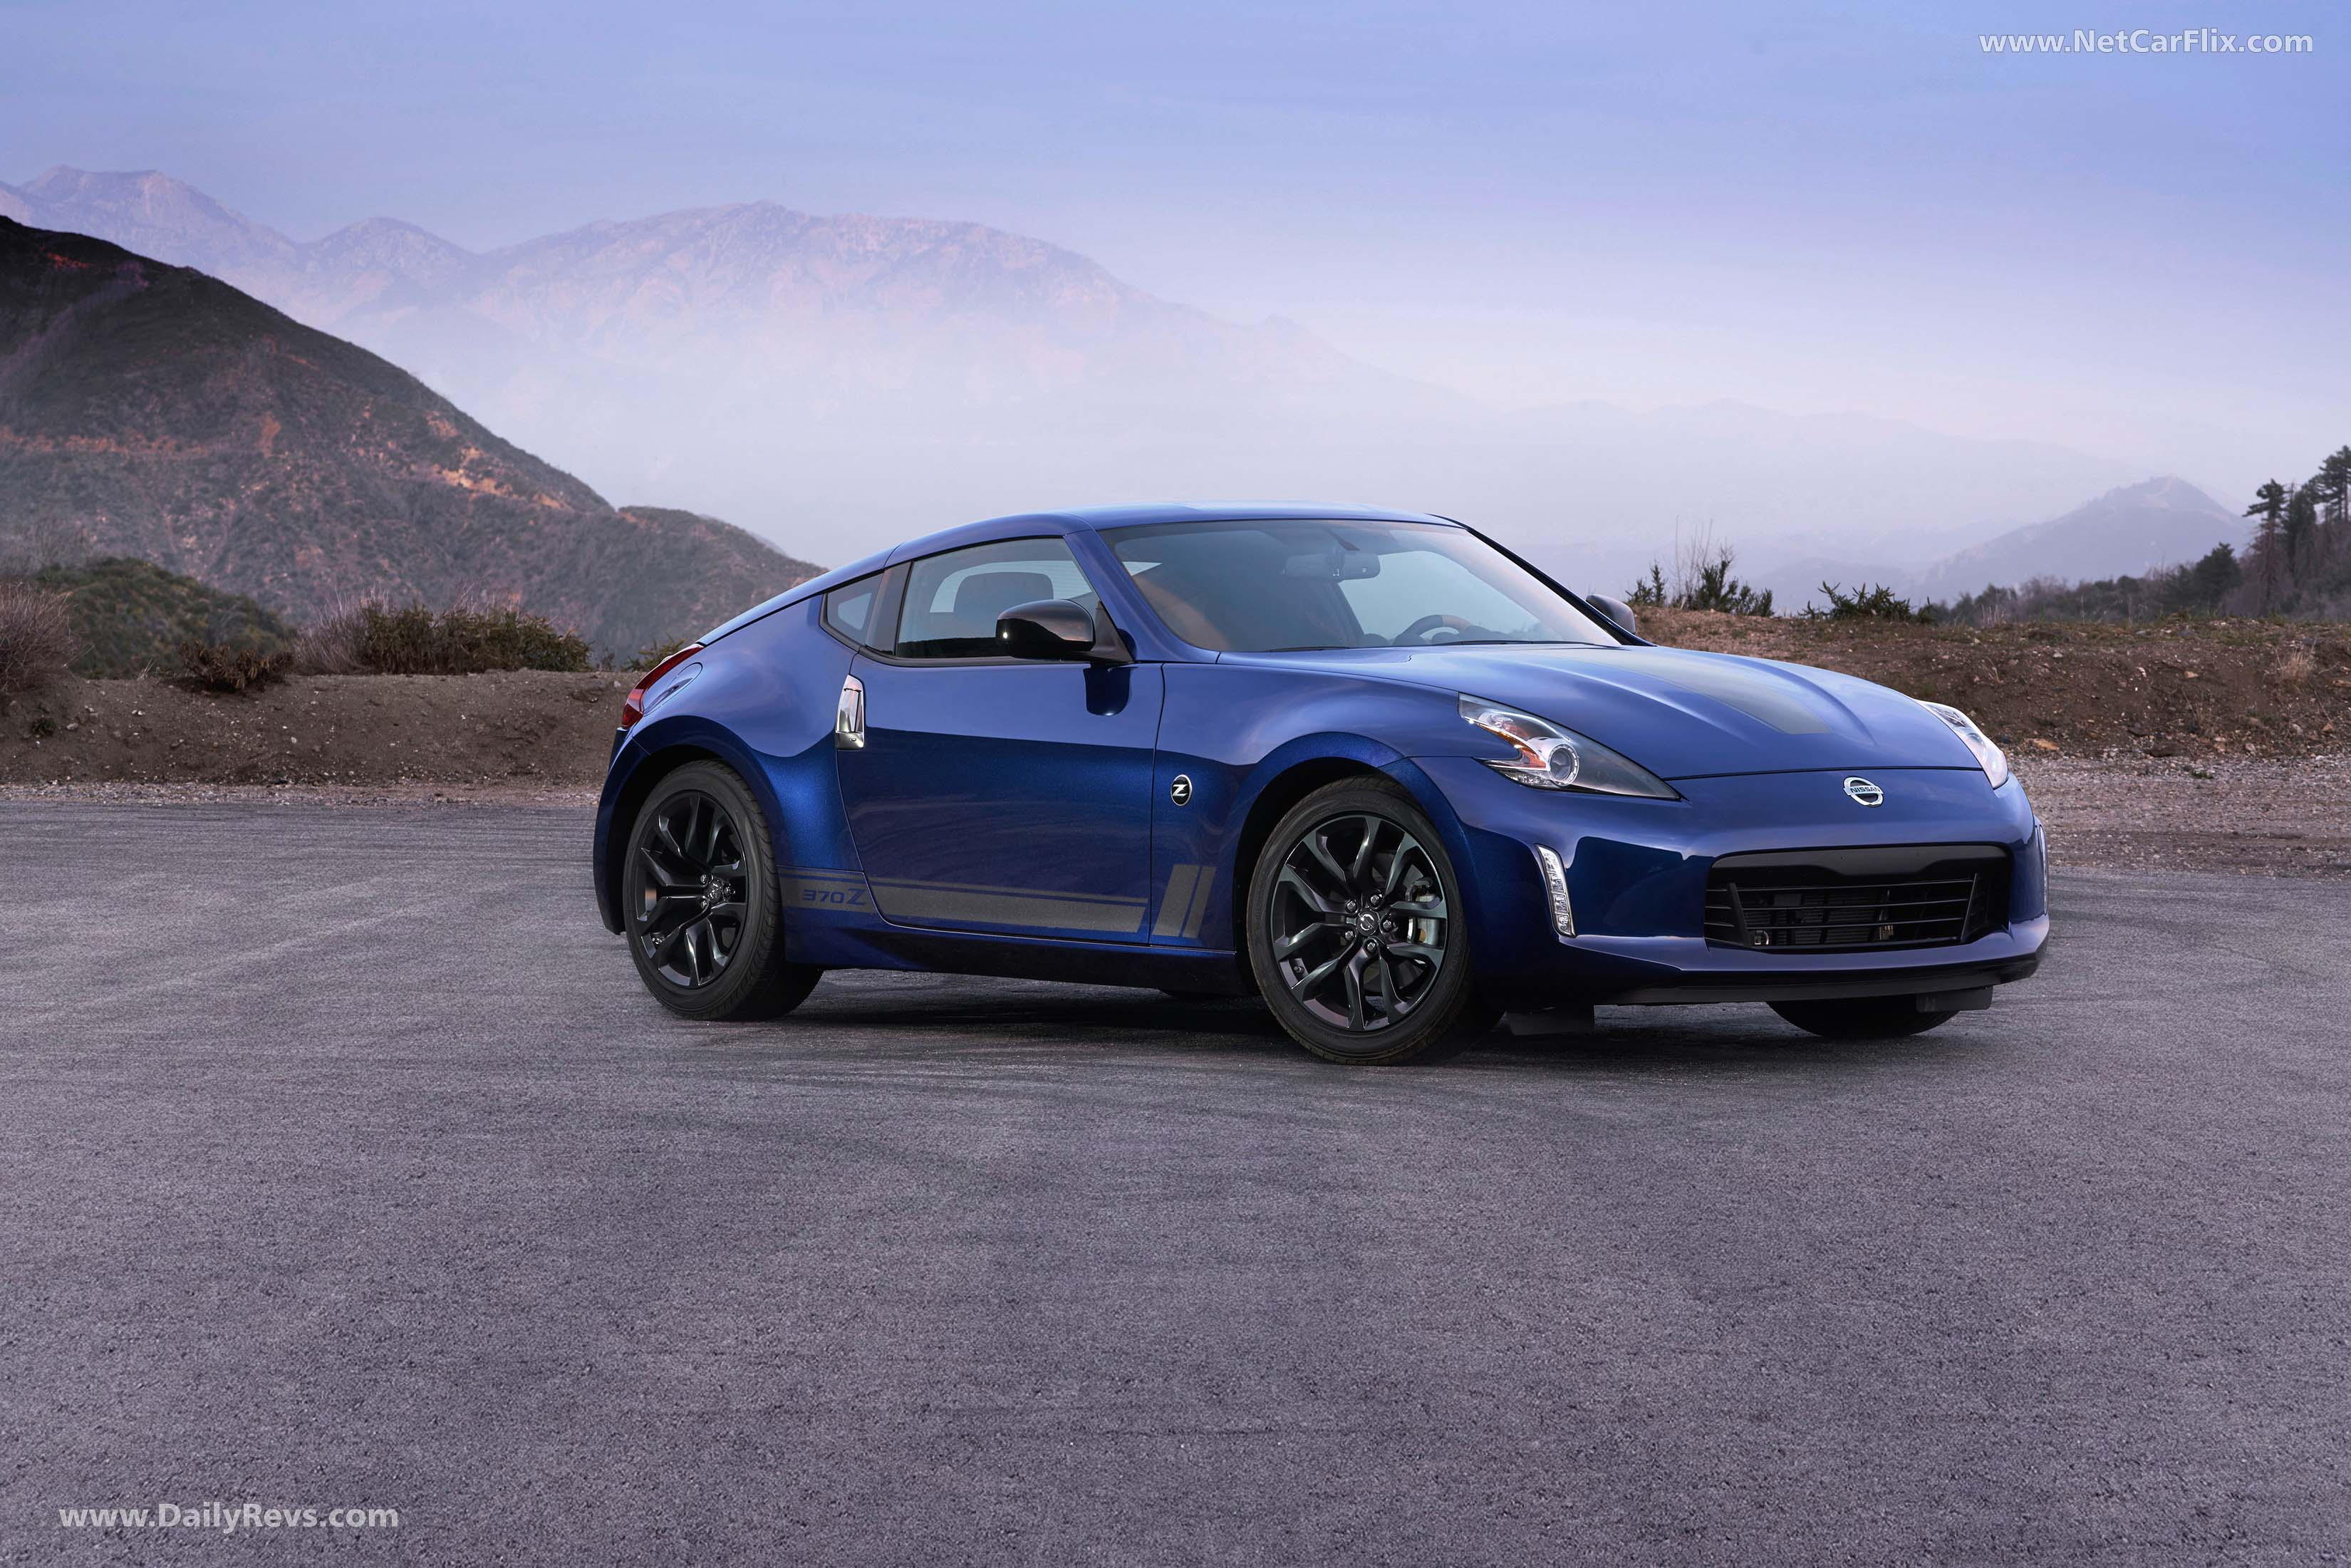 2019 Nissan 370Z Heritage Edition - HD Pictures, Videos ...